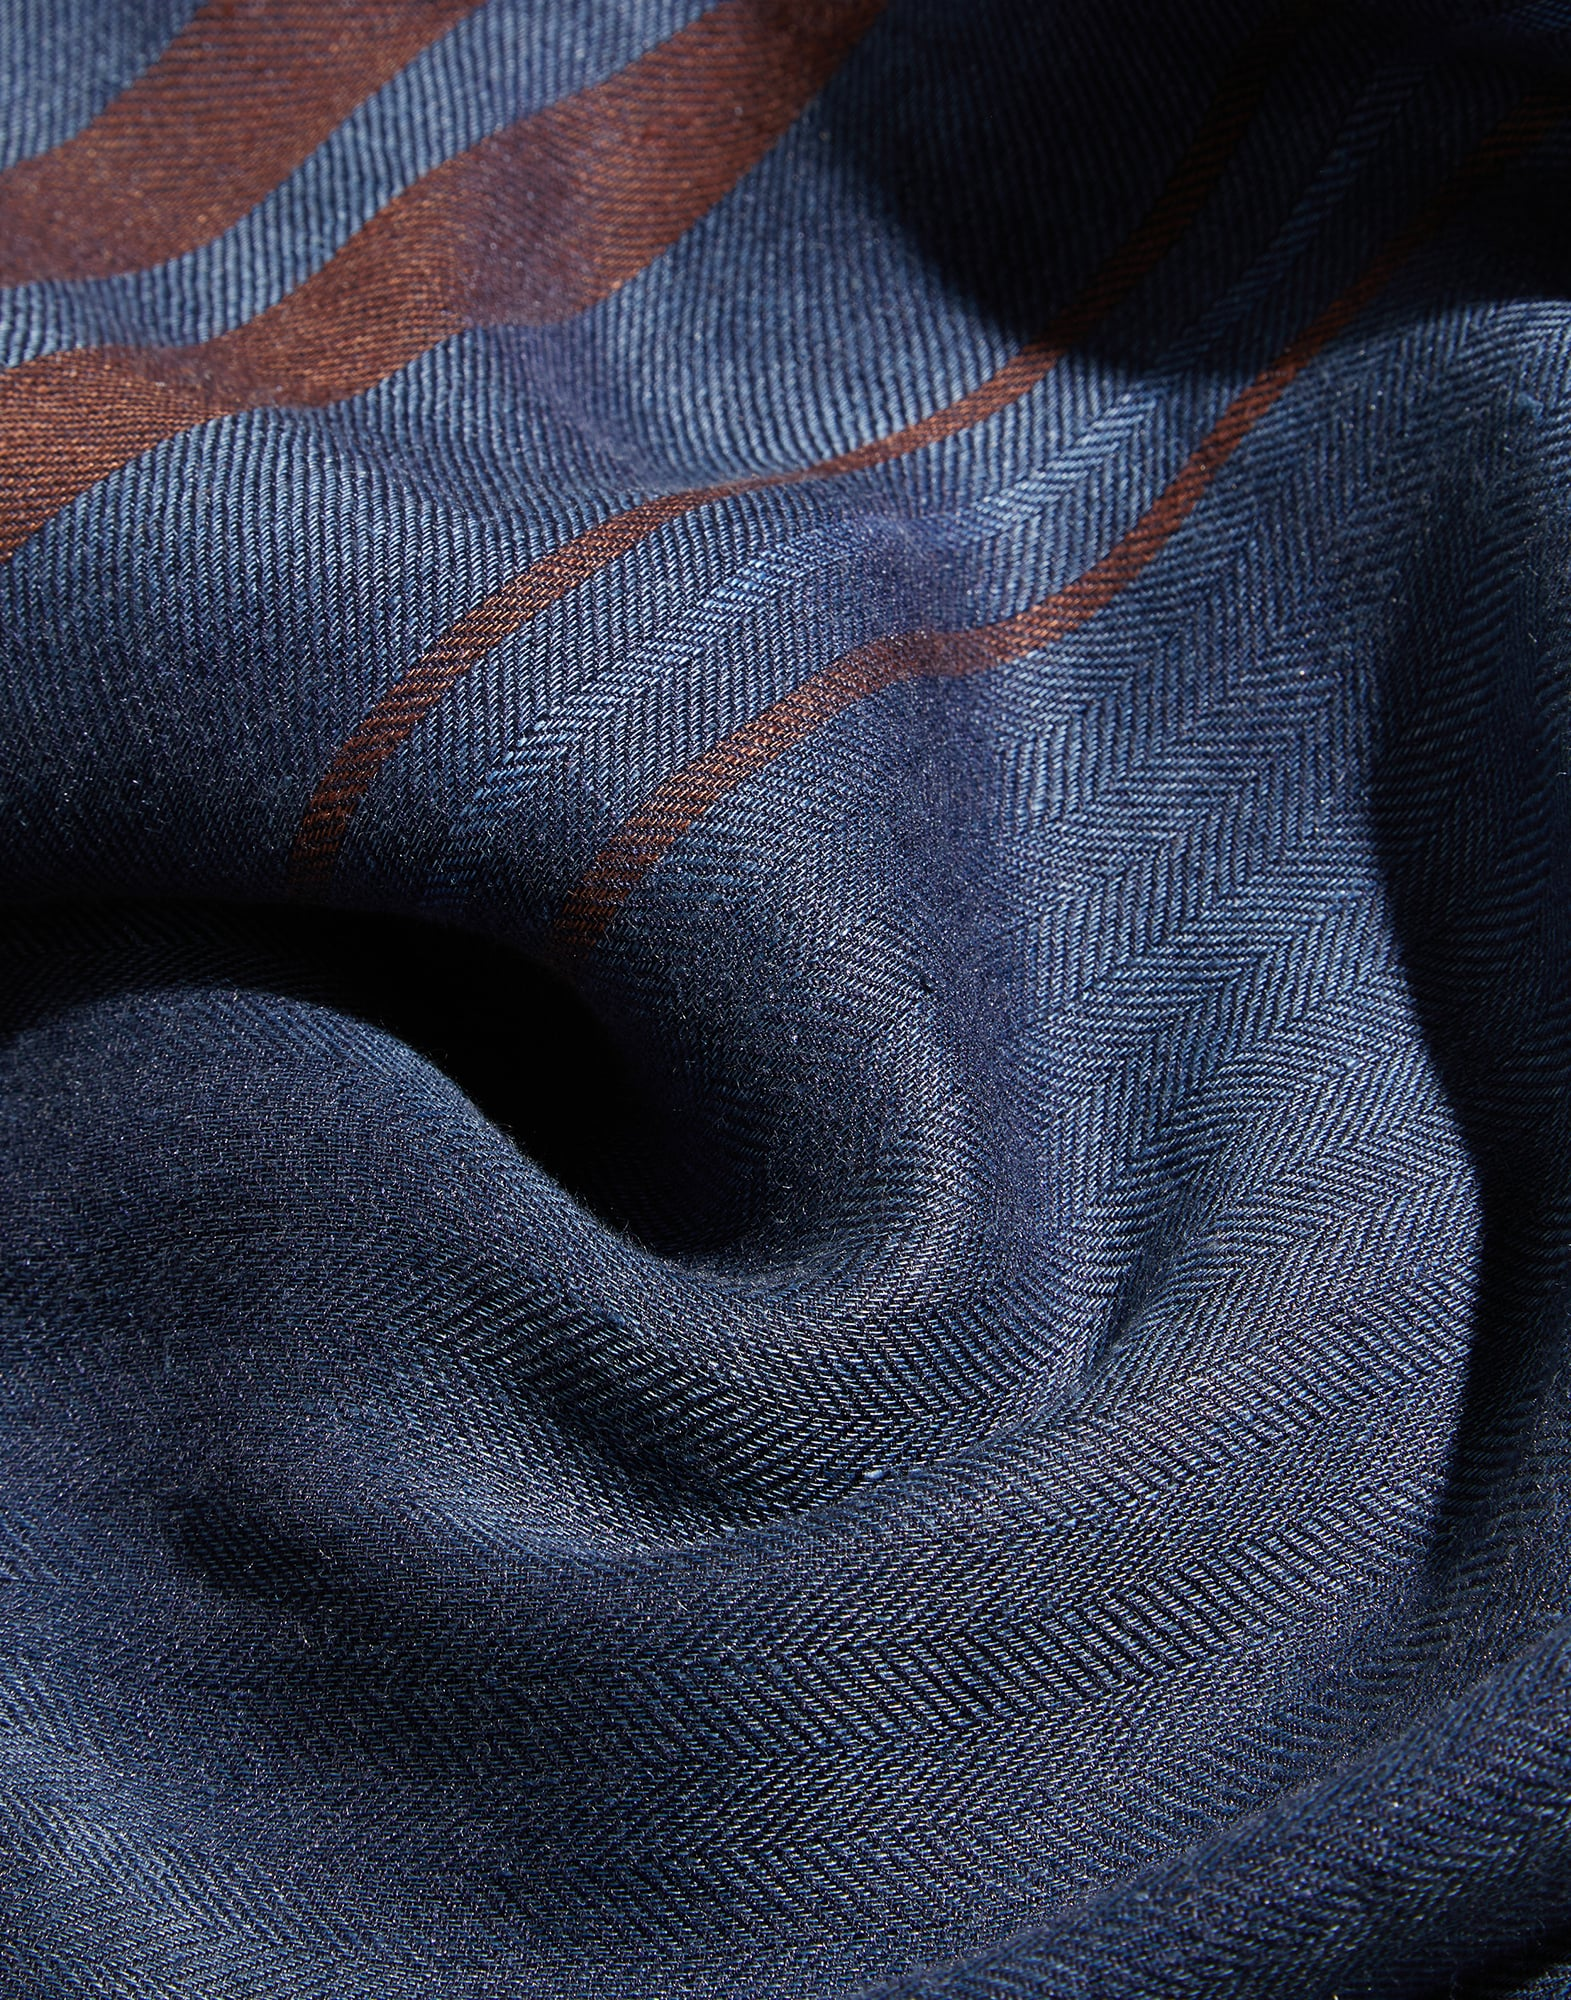 Patterned Scarf - Detail view